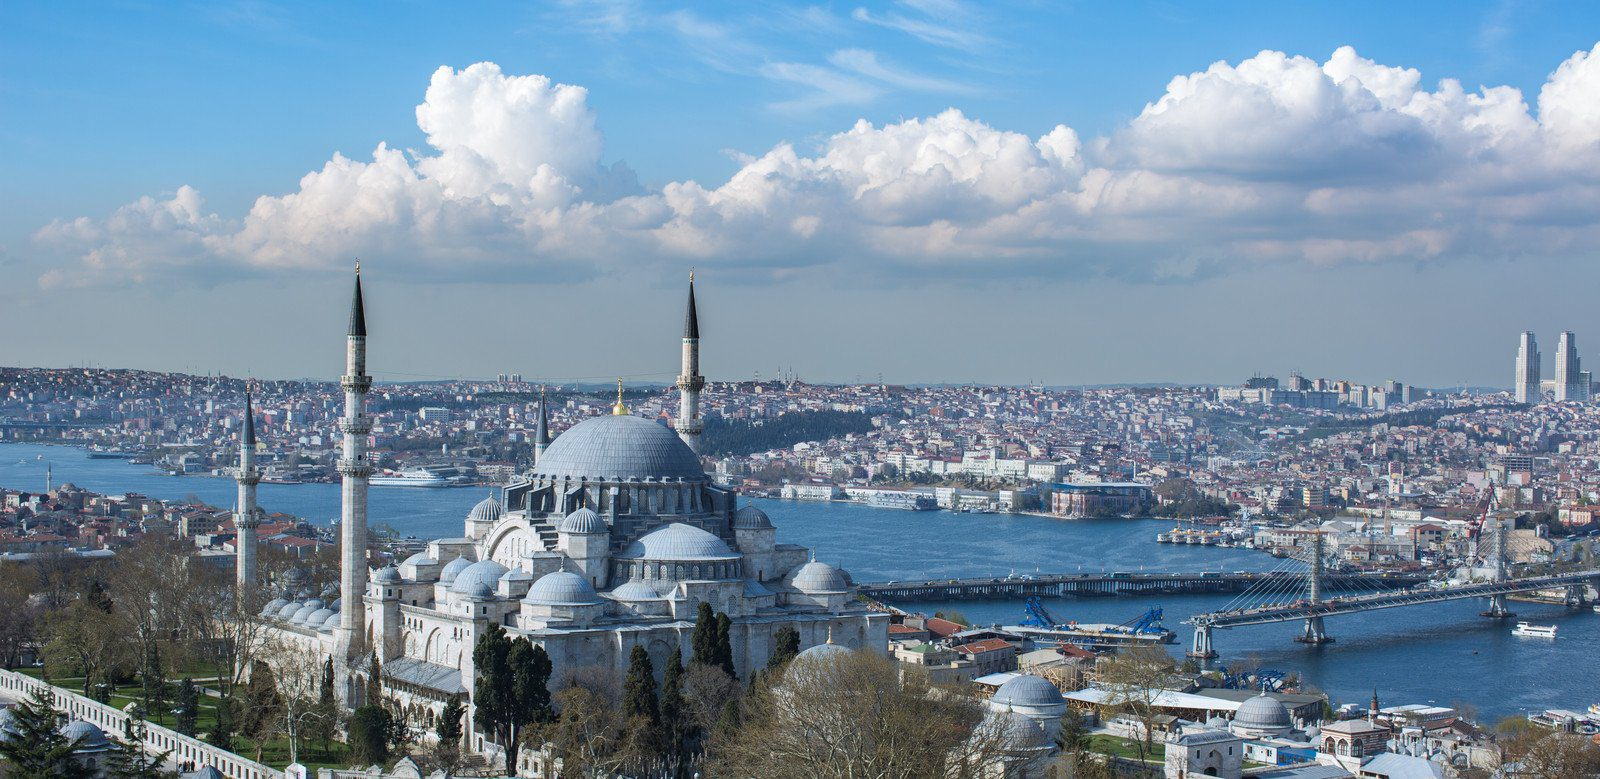 View over the Blue Mosque and Istanbul, Turkey